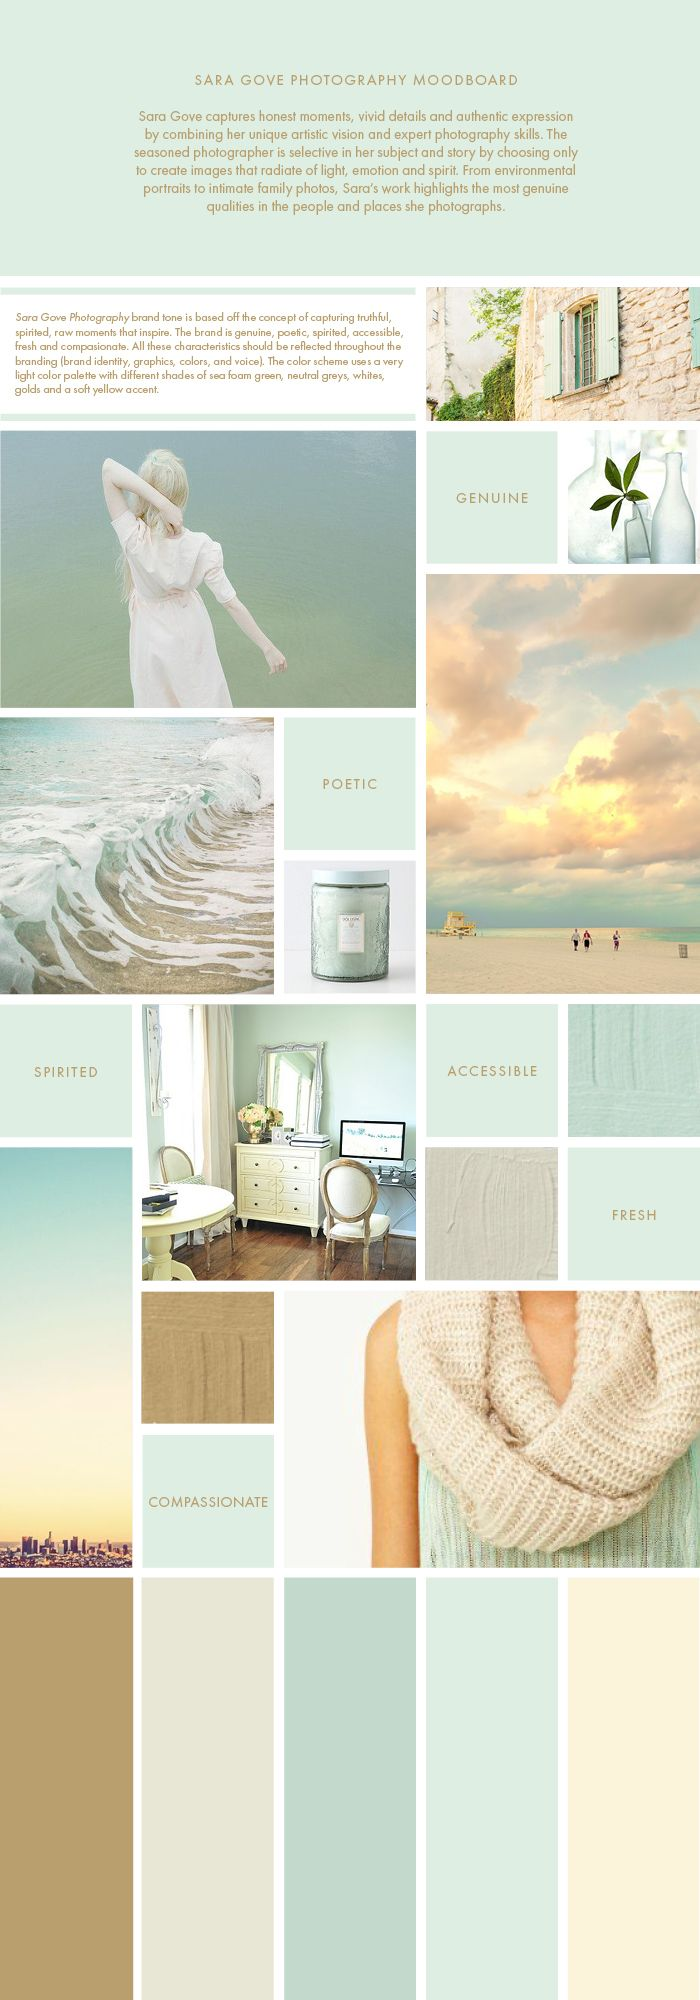 Mood board for Sara Gove Photography. #workinprogress #riotwork #moodboard